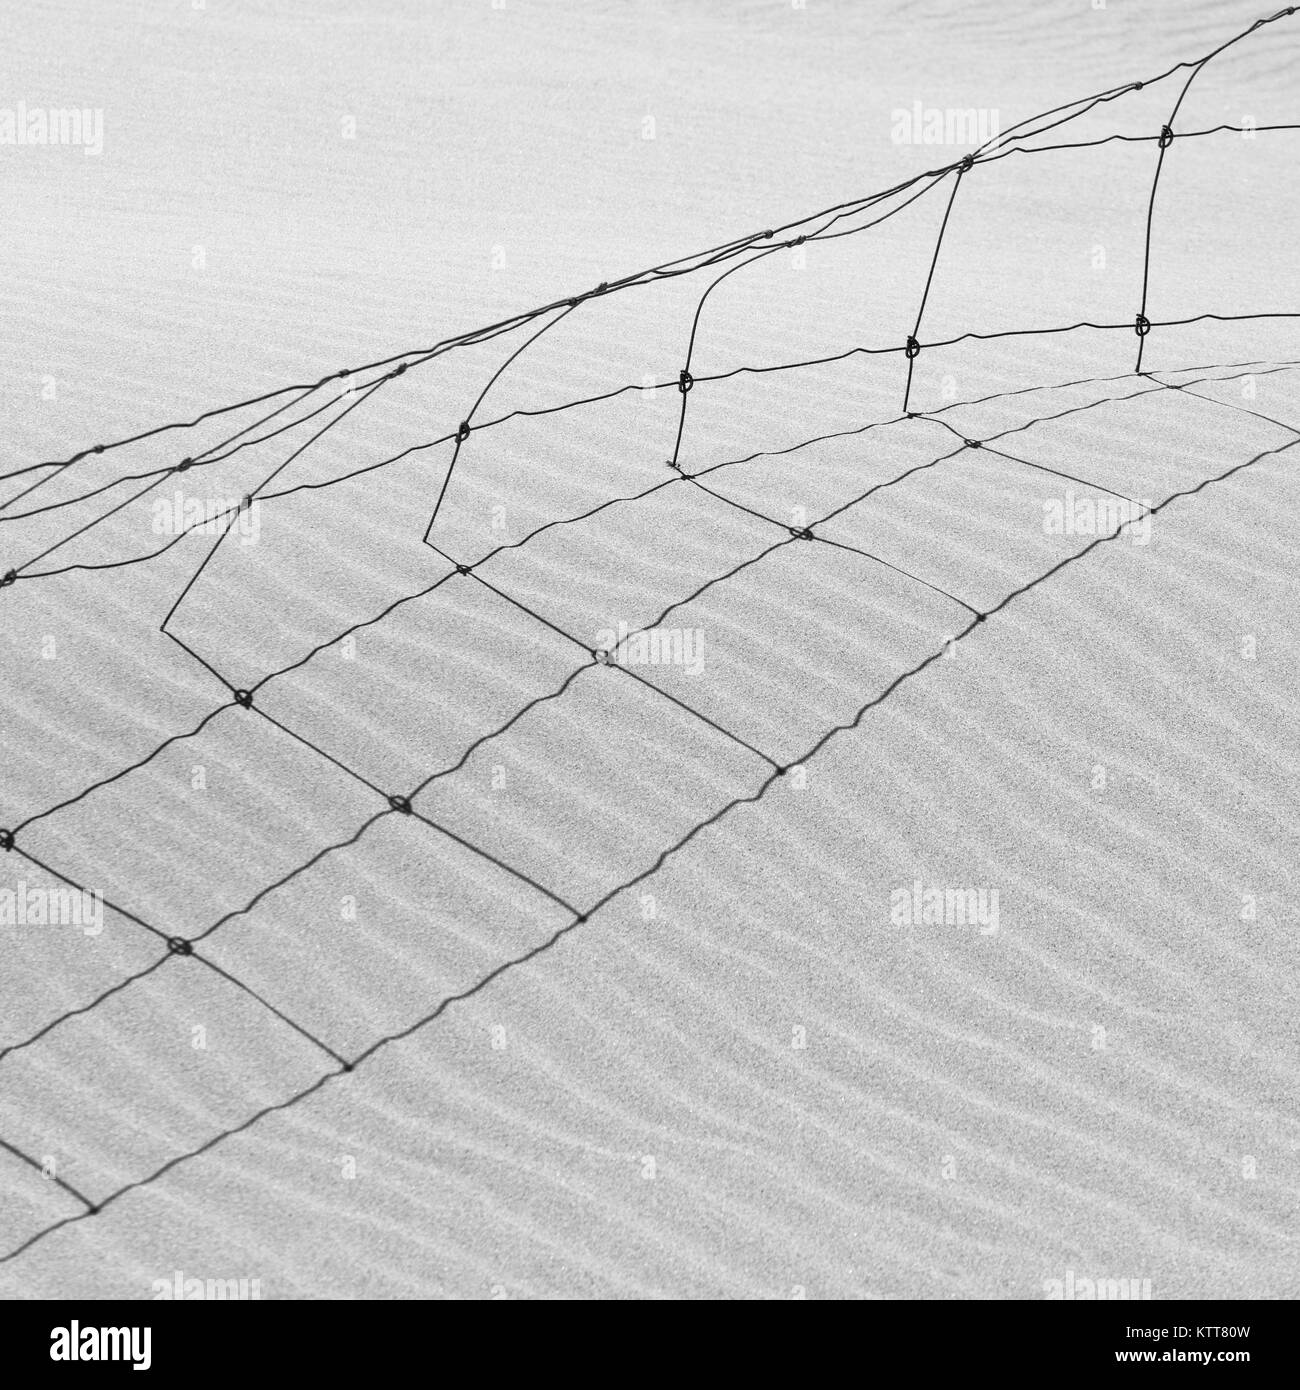 Abstract wire fence in sand dune Black and White sorrento beach Perth - Stock Image